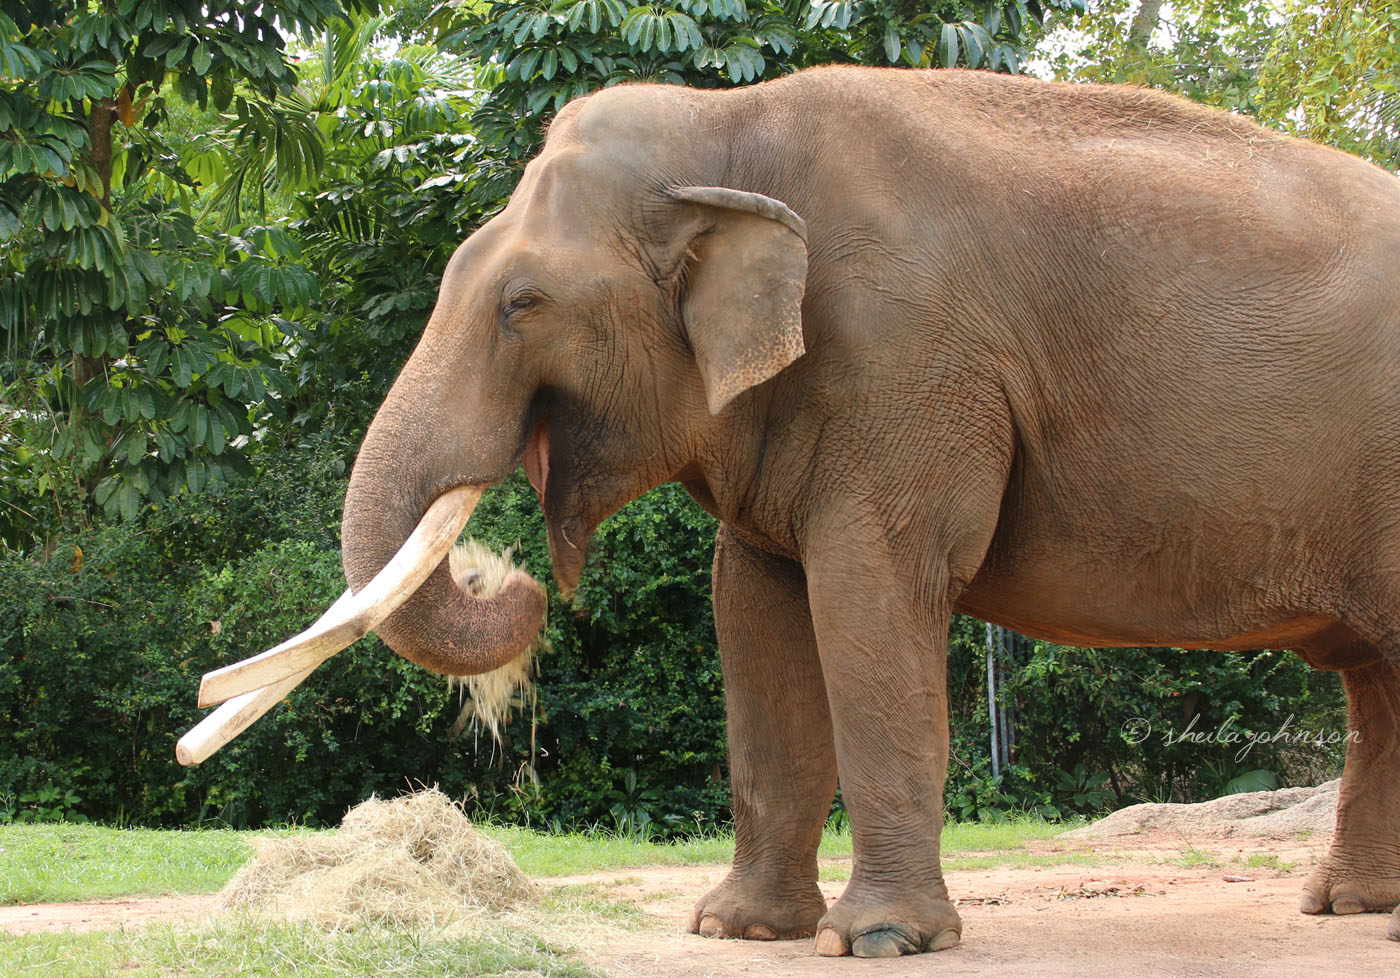 This Is Dalip, The Male Asian Elephant Who Lives At Zoo Miami. How Can We Tell He's An Asian Elephant And Not An African Elephant? The Easiest, First-Glance Way To Tell Is That The Asian Elephant Has Much Smaller Ears Than Its African Counterpart.